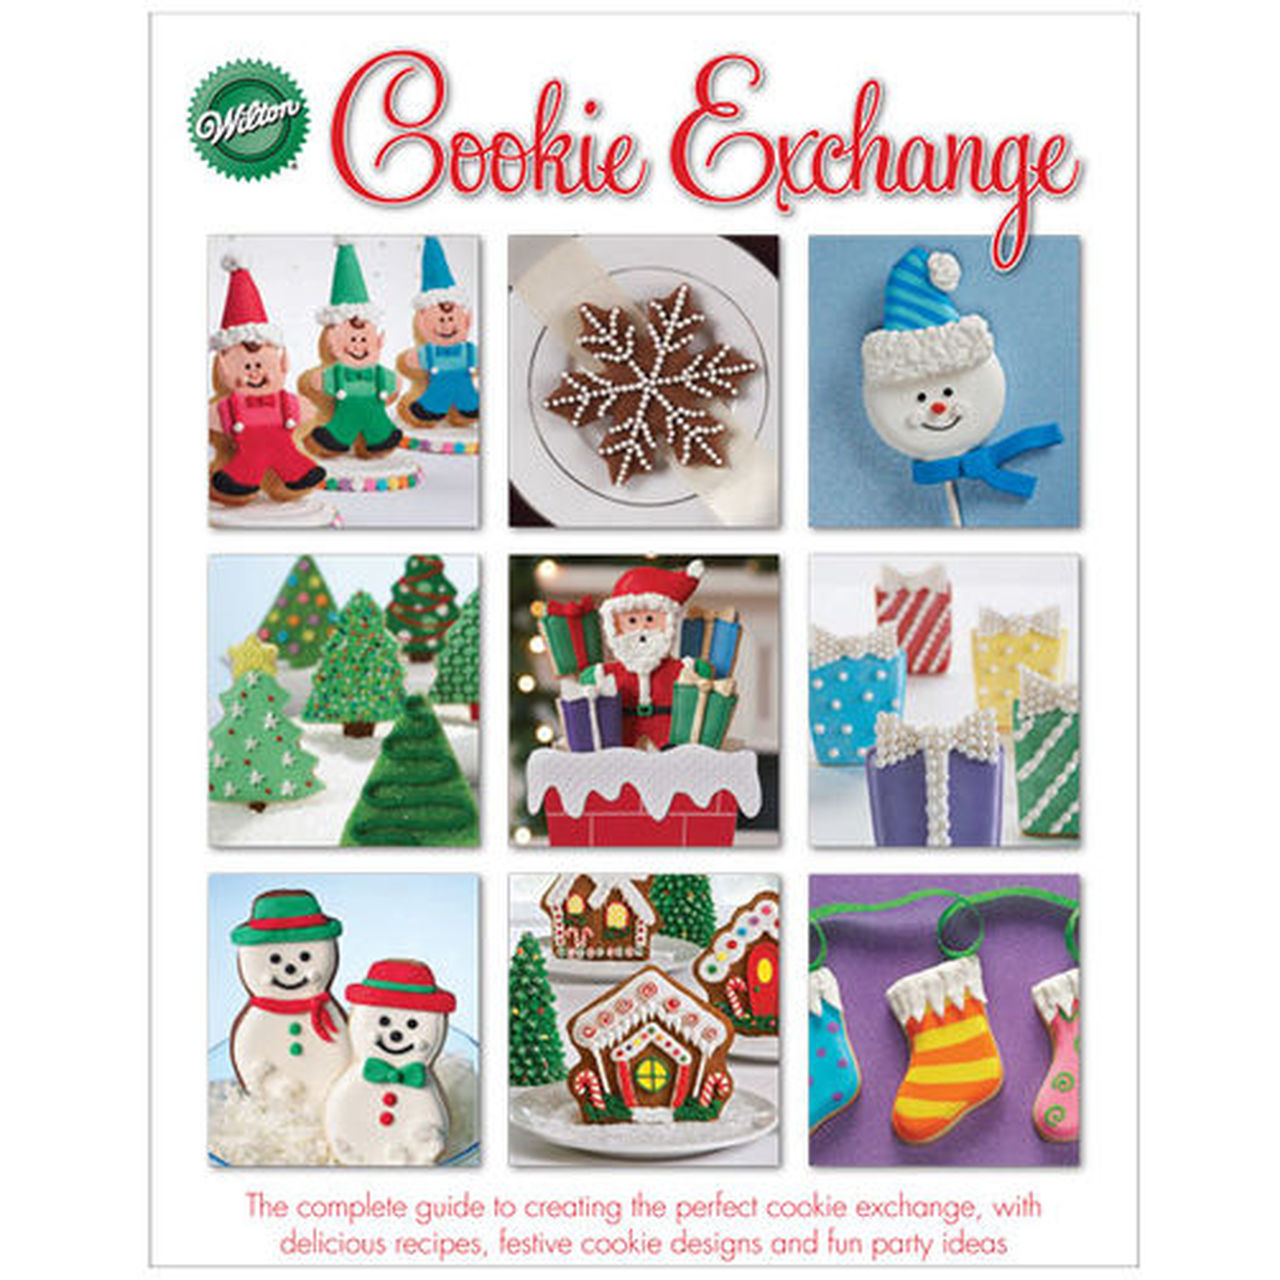 Christmas book exchange clipart picture transparent stock Christmas Cookie Exchange Book - Zoratto Enterprises picture transparent stock